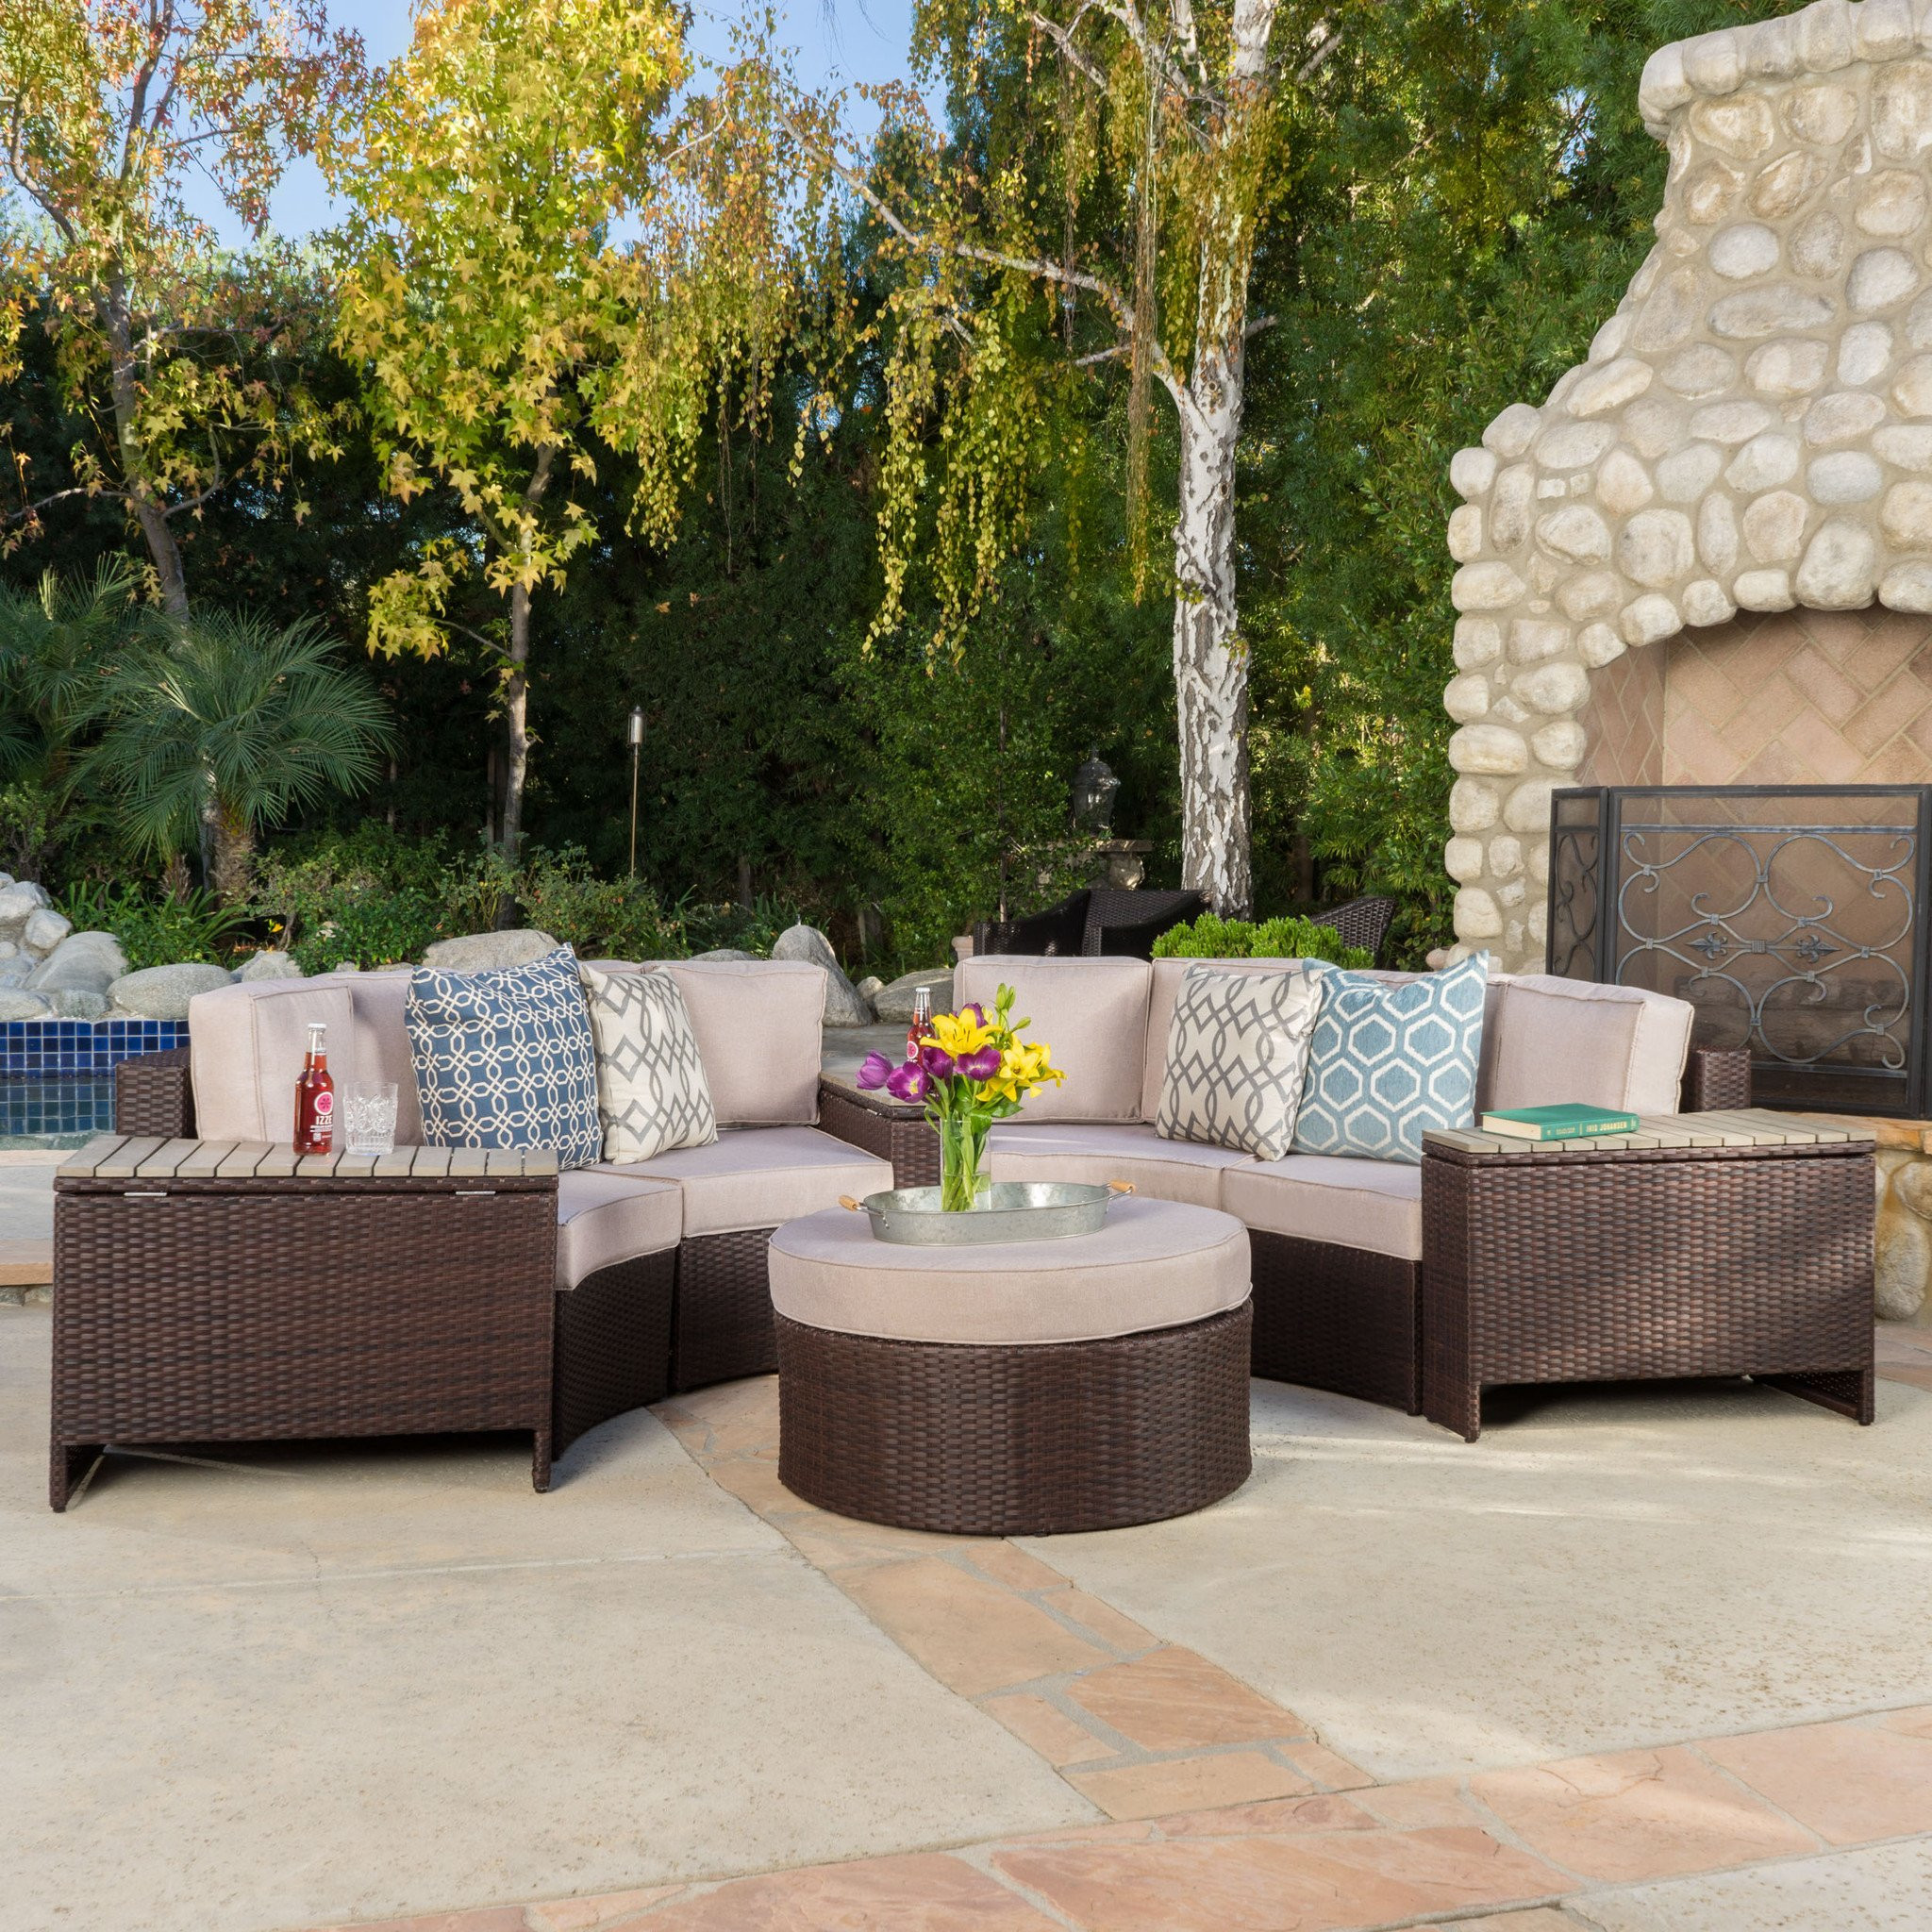 Riviera 8pc Outdoor Sectional Sofa Set w/ Storage...